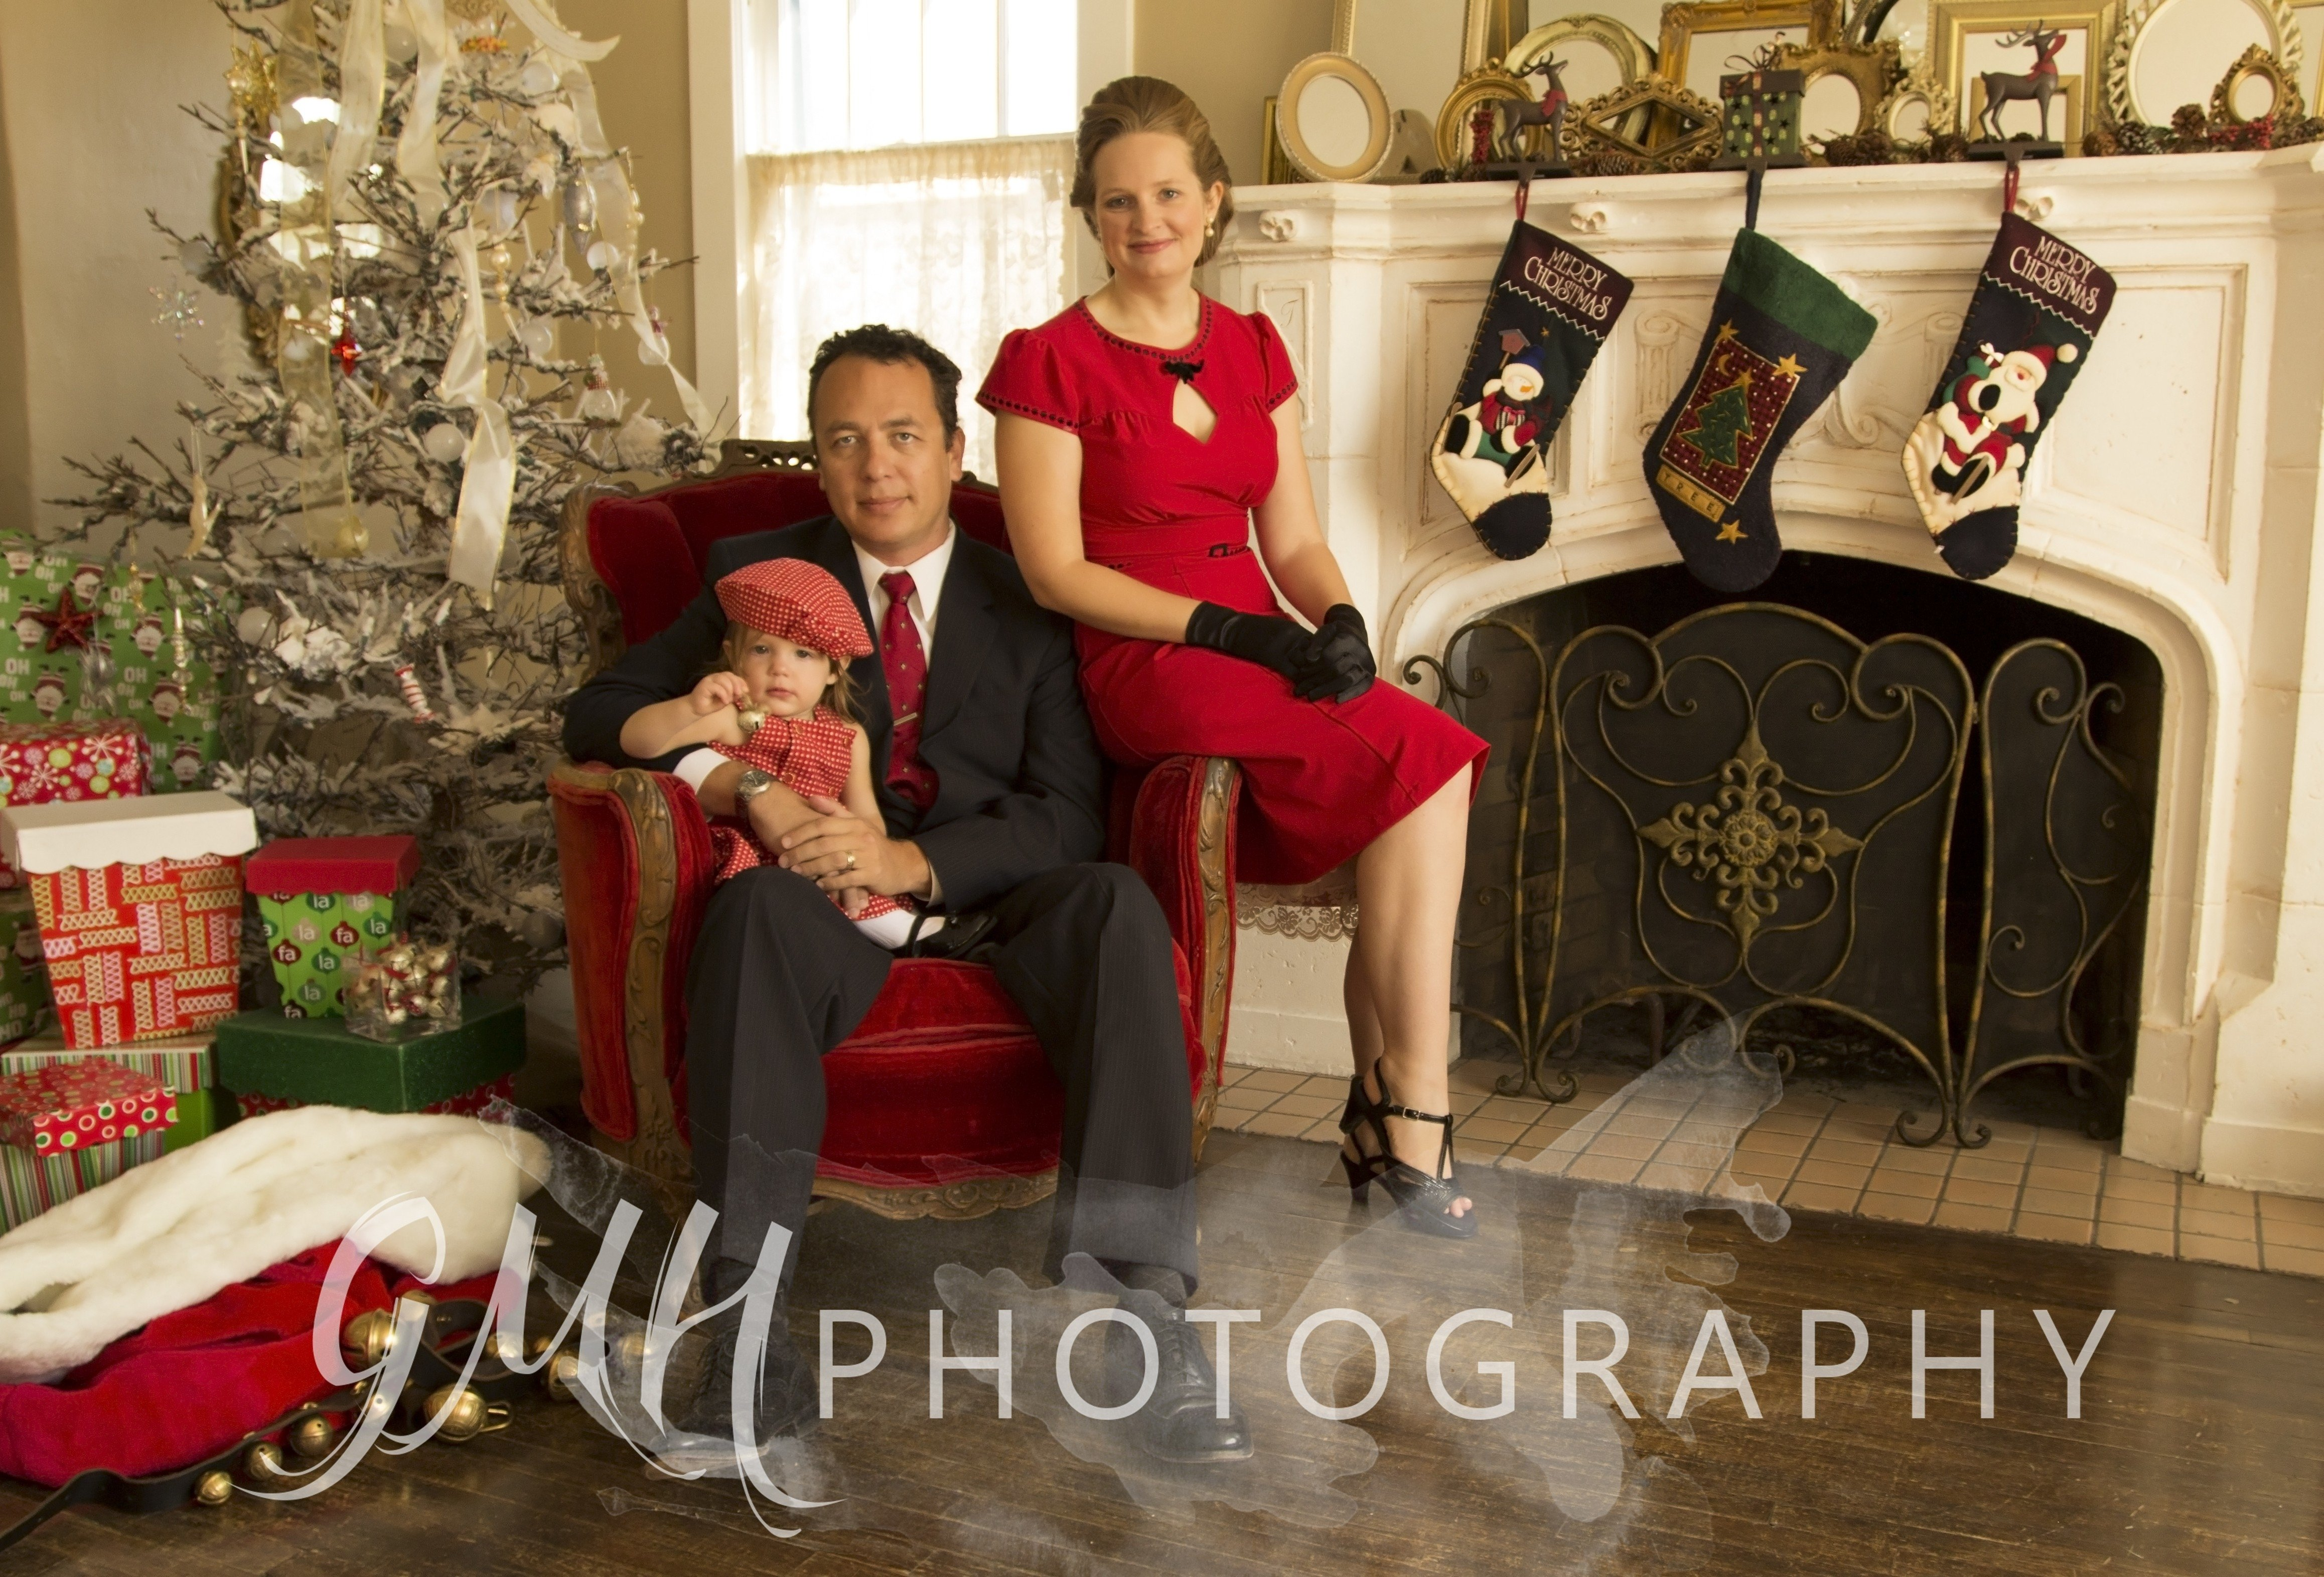 10 Elegant Ideas For Family Christmas Pictures beautiful christmas family picture ideas creative throughthelens